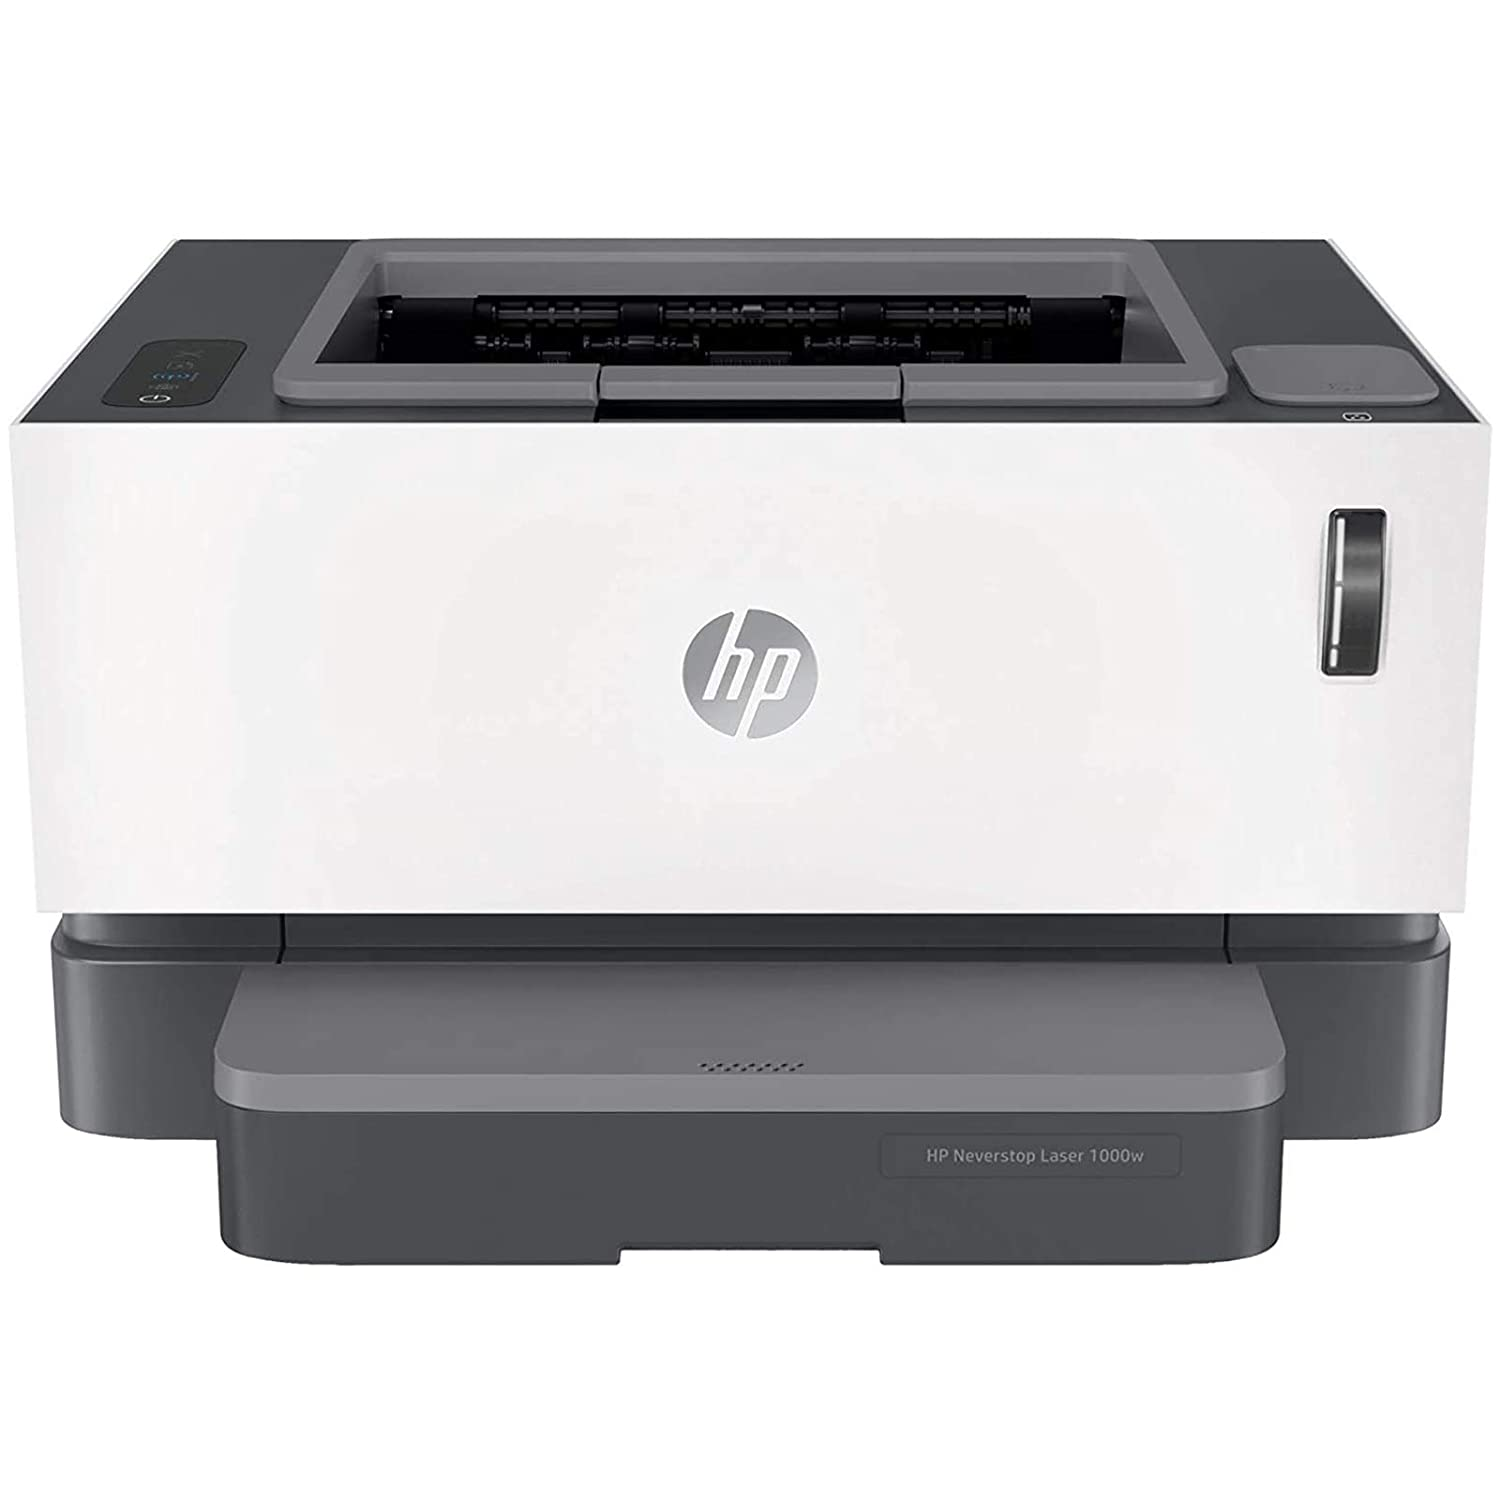 HP Neverstop Laser 1000w Wireless Printer (4RY23A)